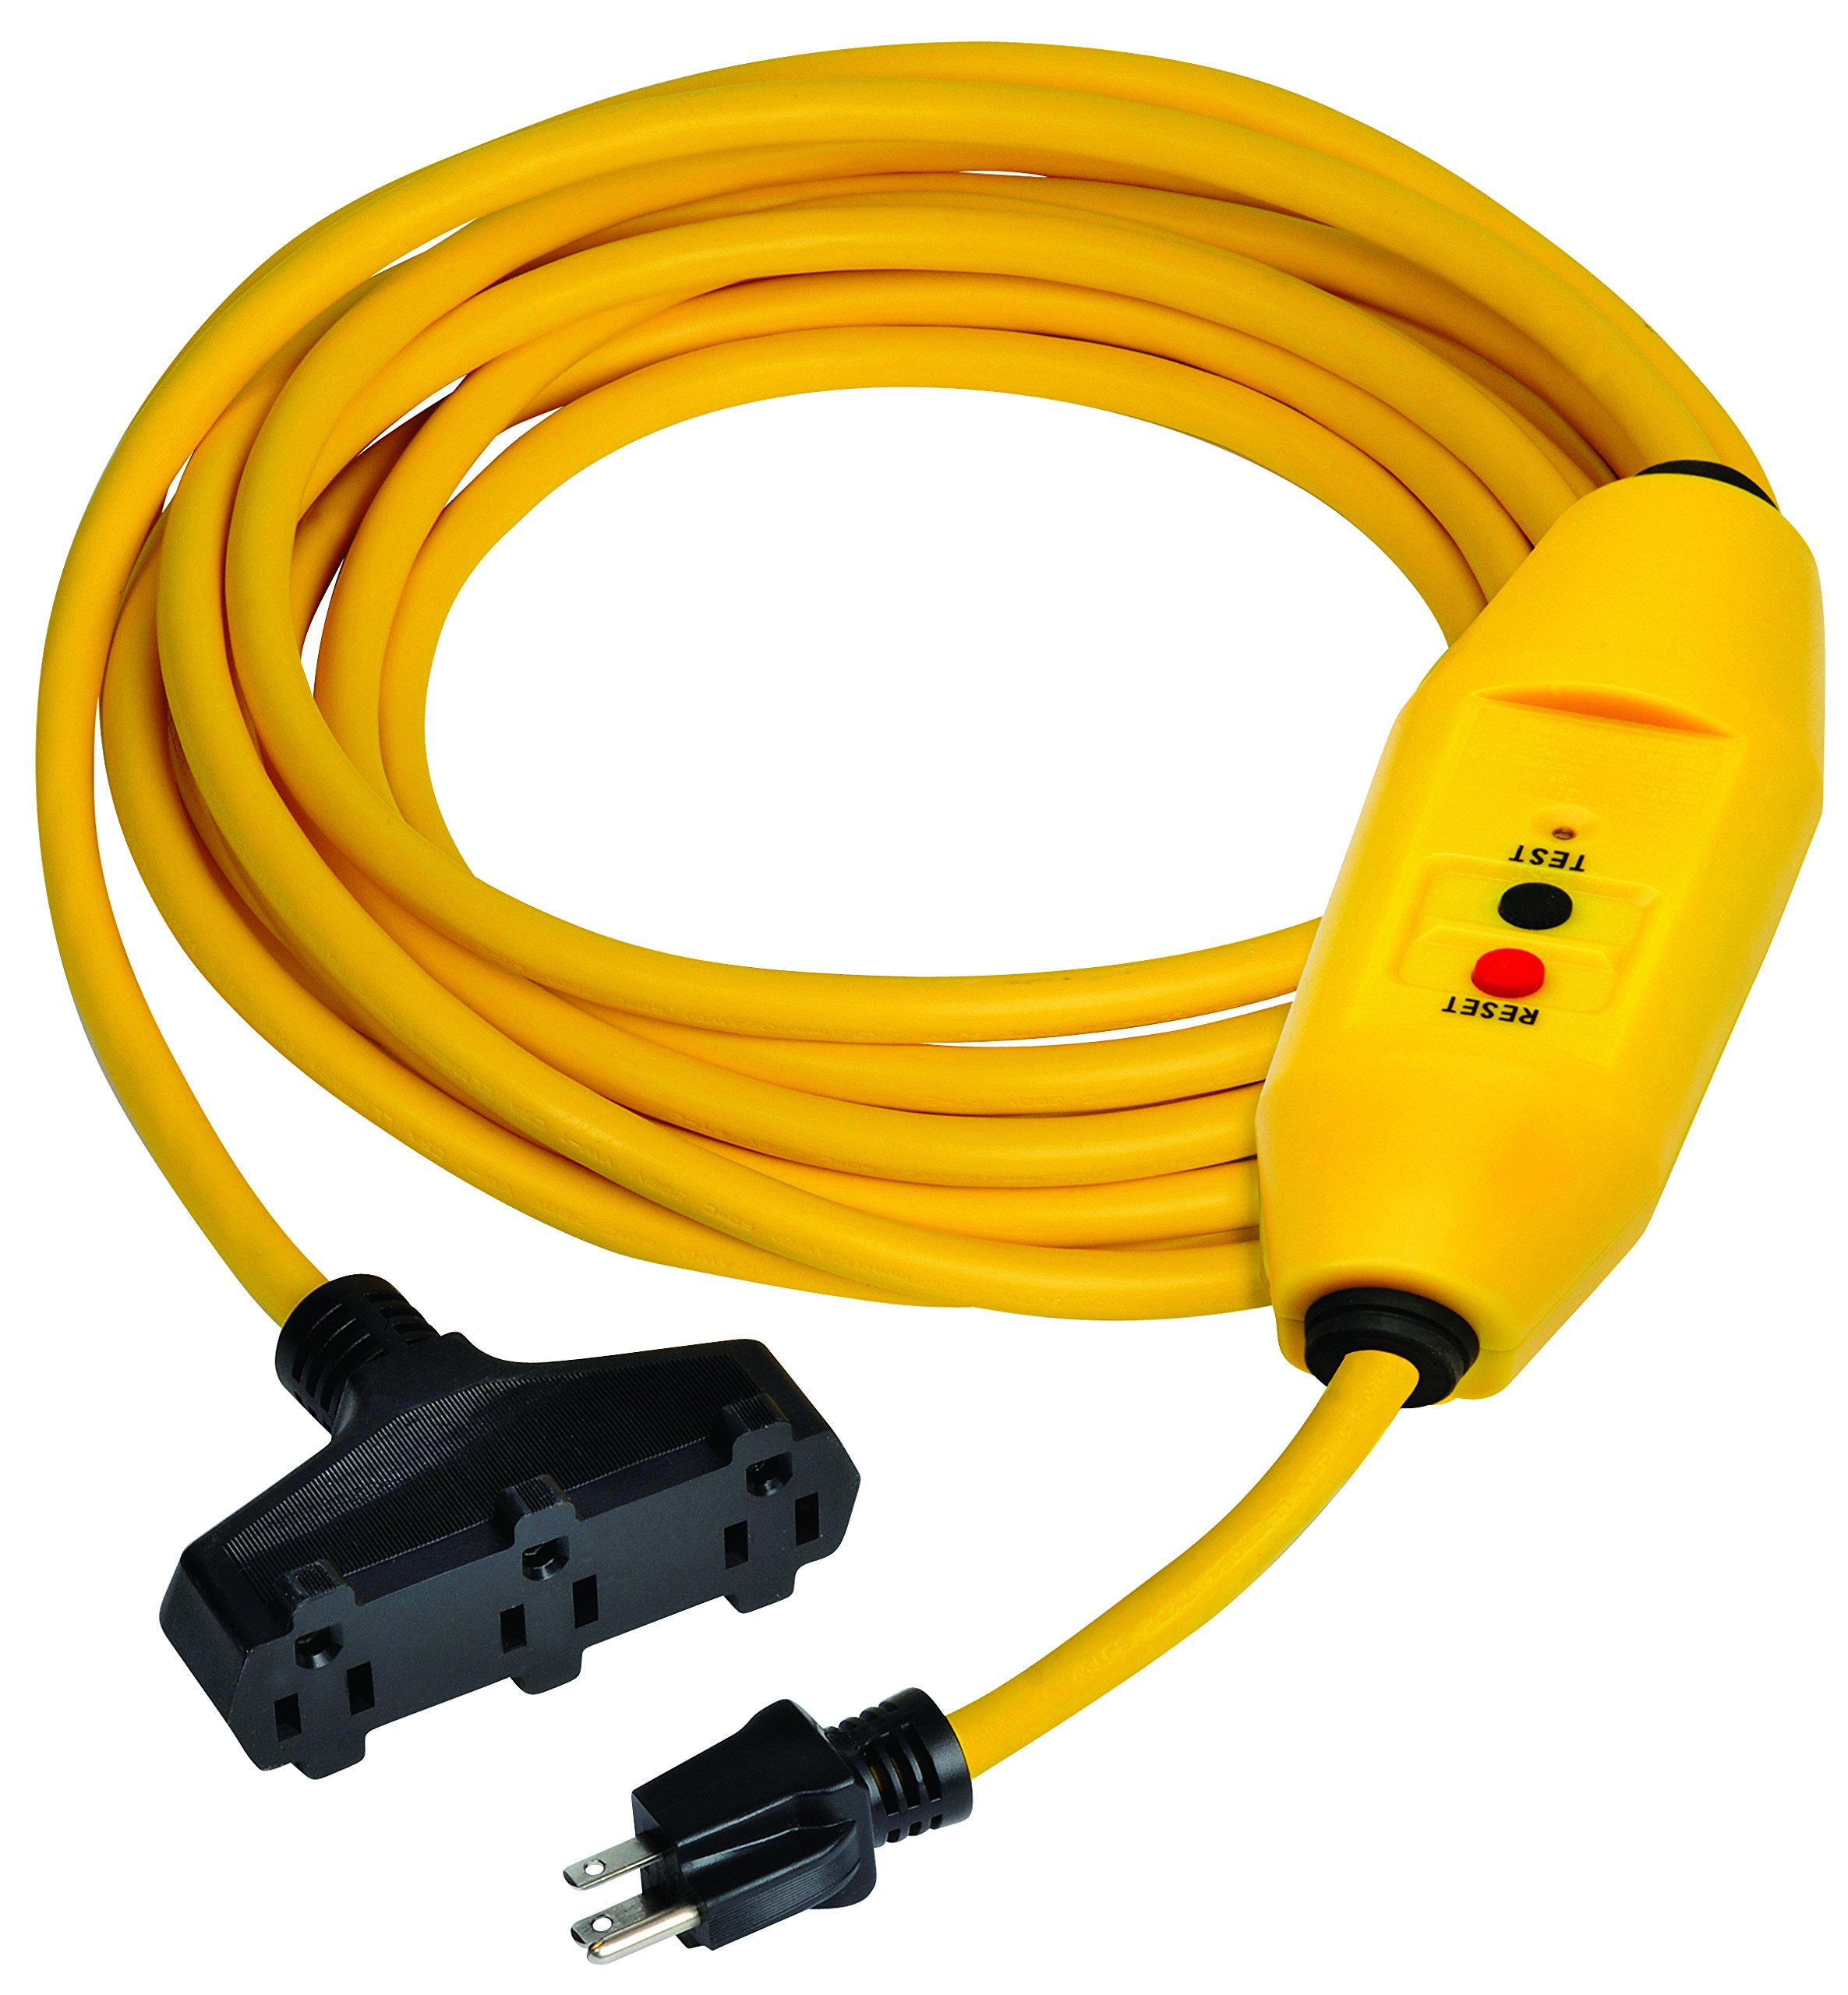 Tower Manufacturing 30438303-01 Auto-Reset 15 AMP Inline GFCI Triple Tap Cord, 50 Feet, Yellow